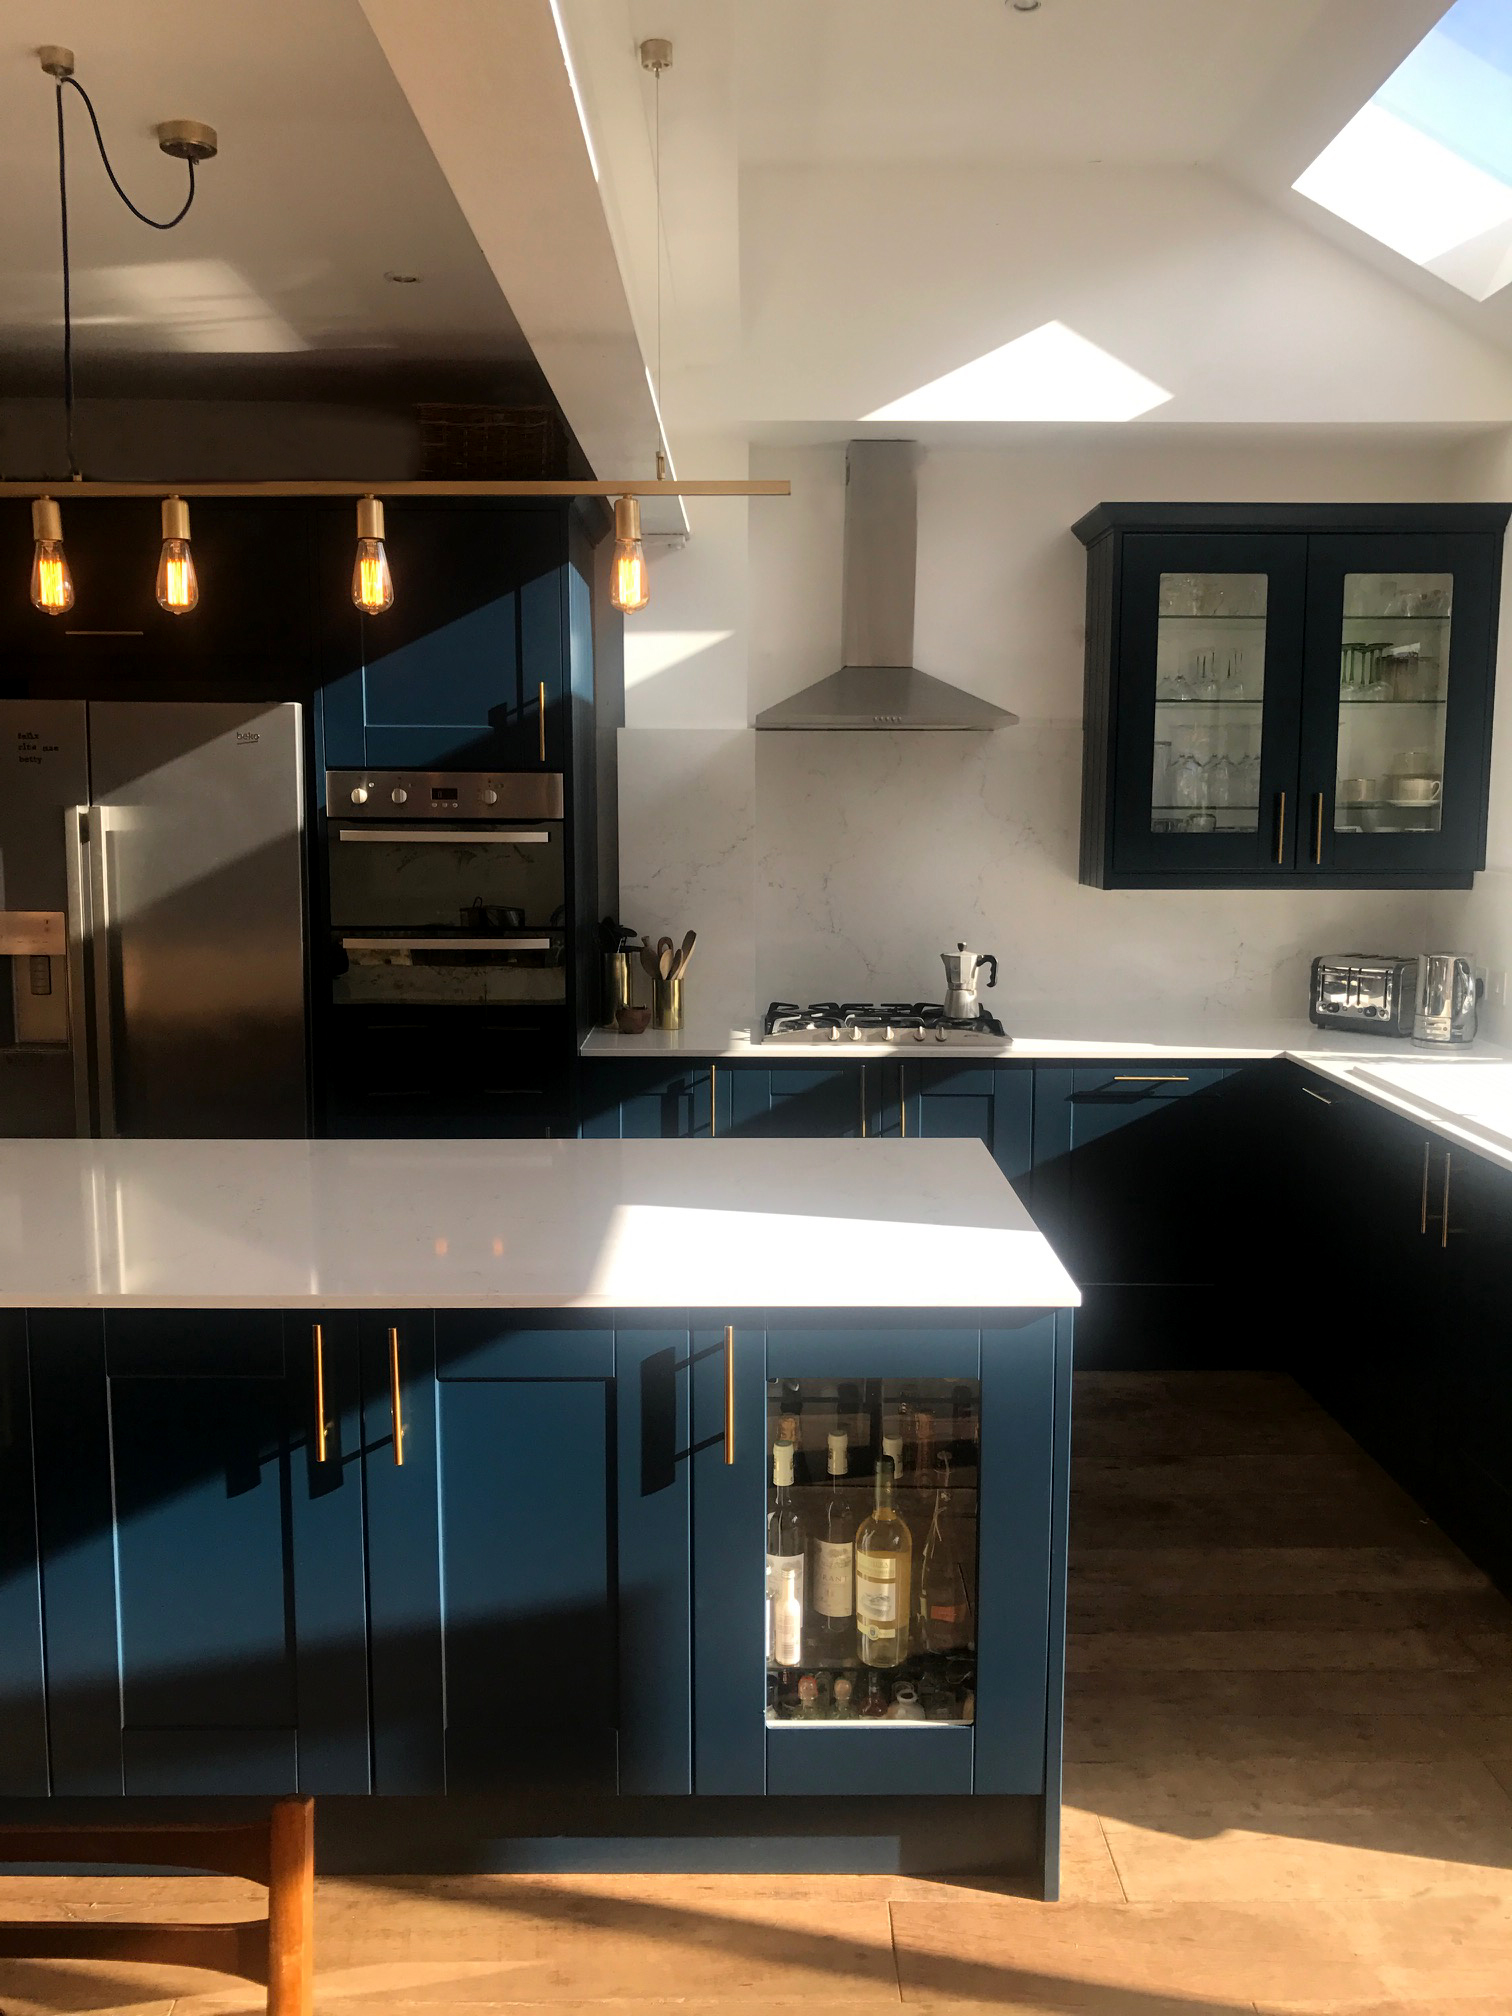 Kitchen Interior Designer London | KAI Interiors Residential